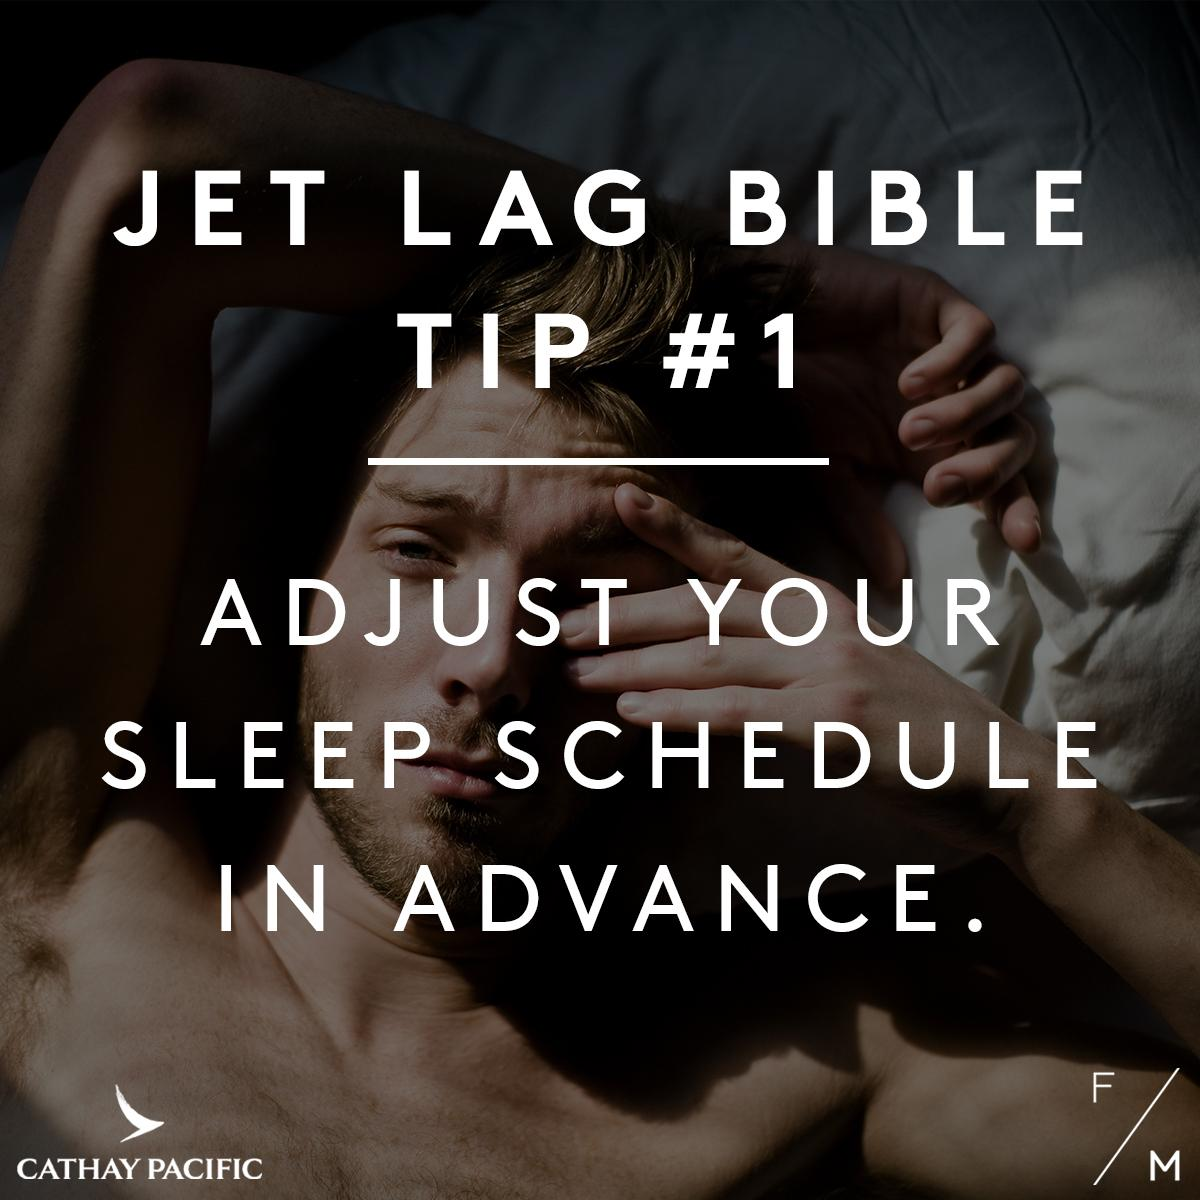 How do you fight jetlag and live a lifewelltravelled?